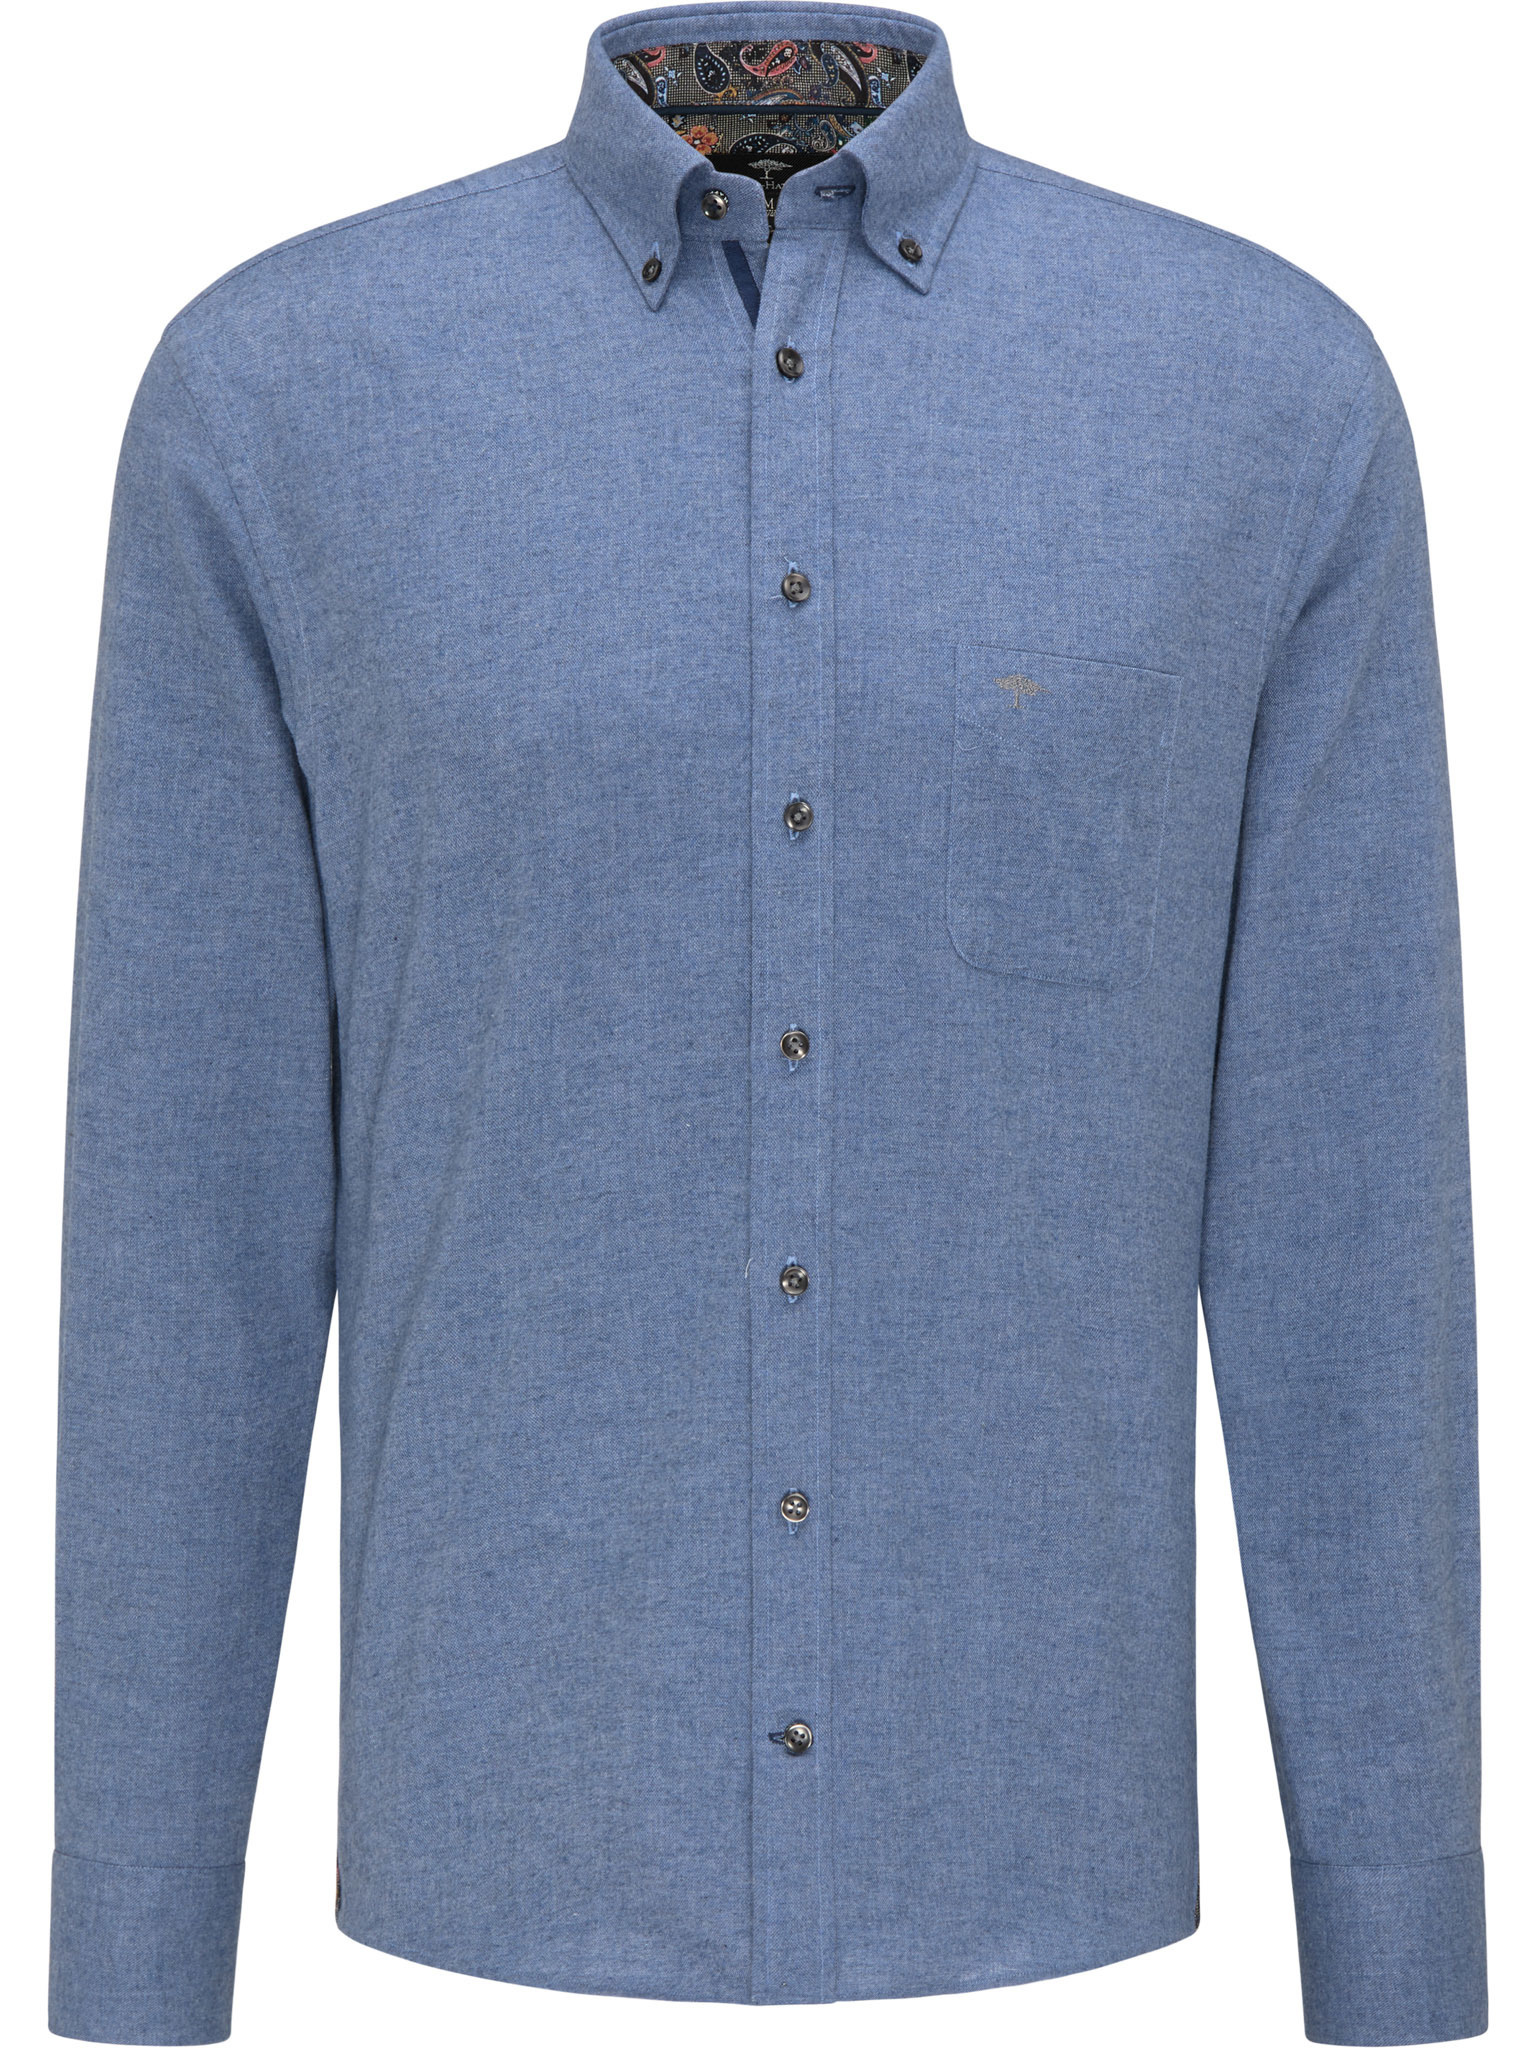 FYNCH HATTON chemise blue-1